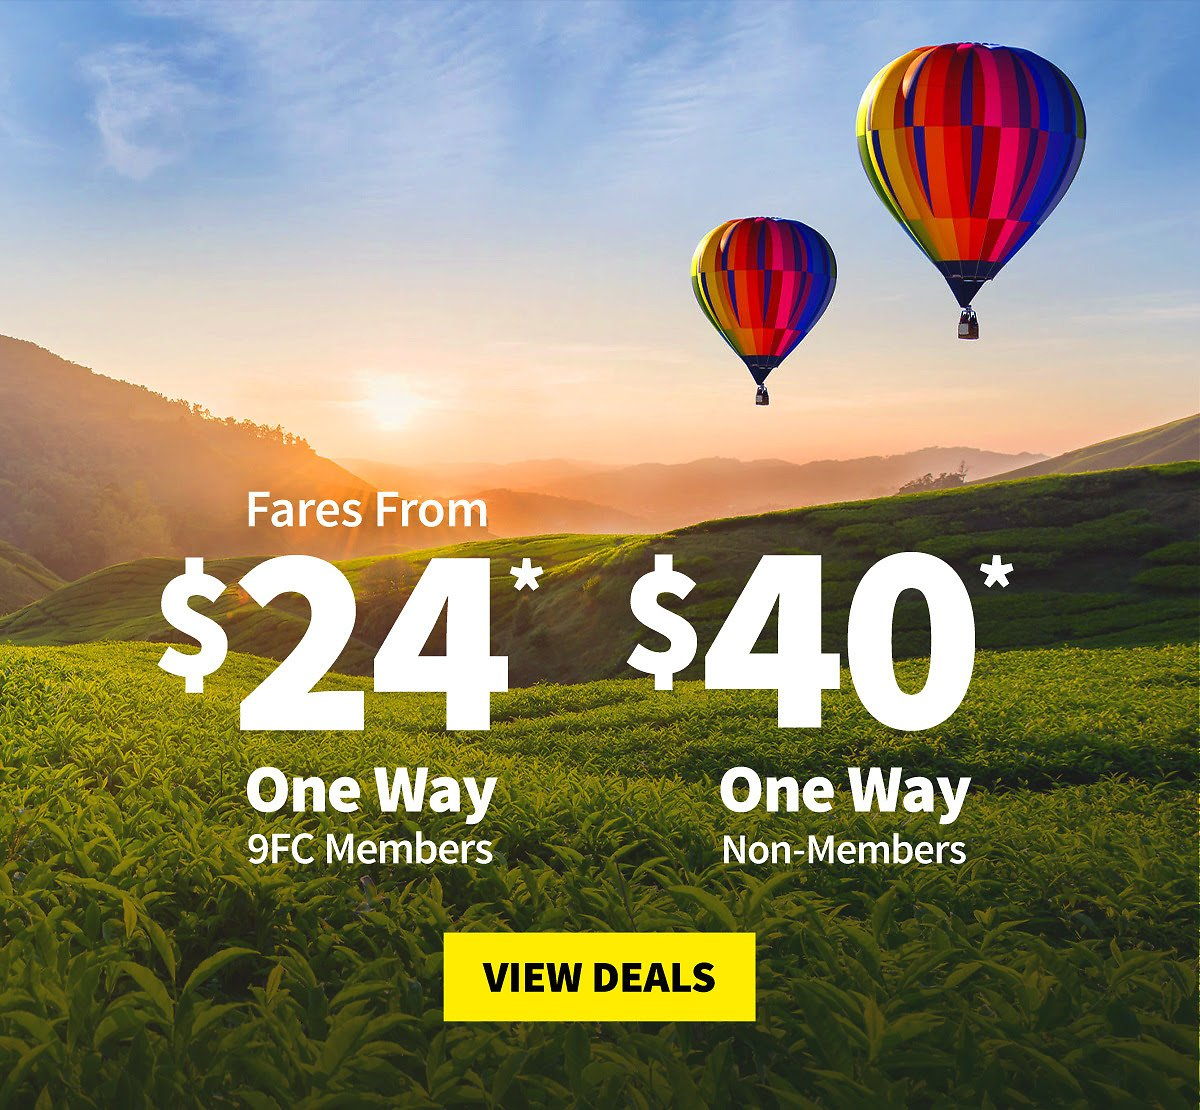 $9 Fare Club Fares From $24 One Way & Non-Members Fares From $40 One Way